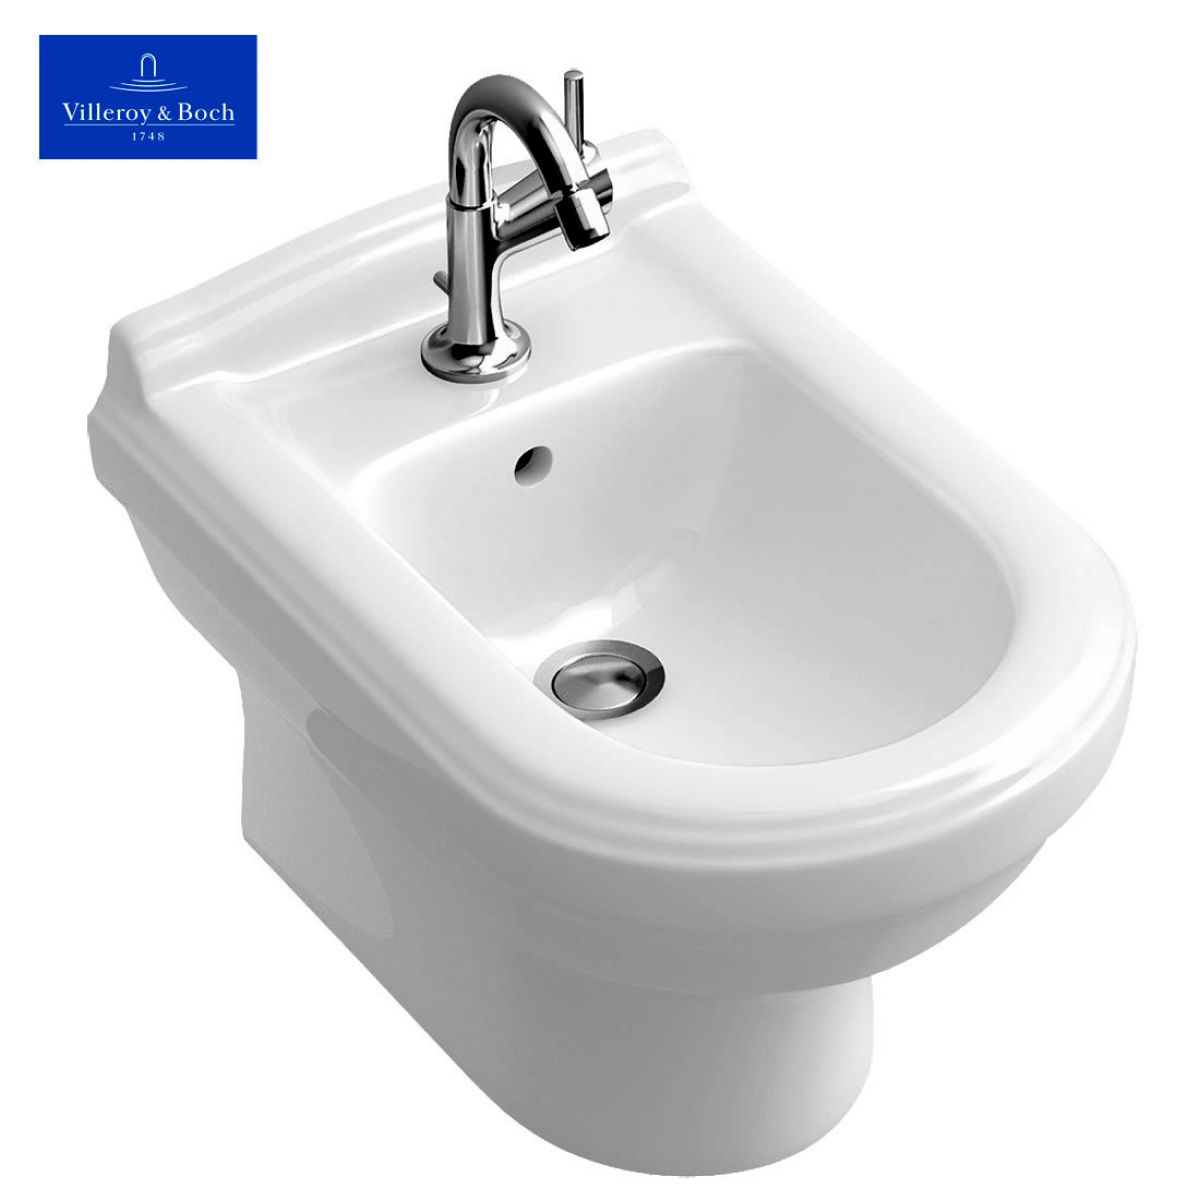 villeroy boch hommage wall mounted bidet uk bathrooms. Black Bedroom Furniture Sets. Home Design Ideas